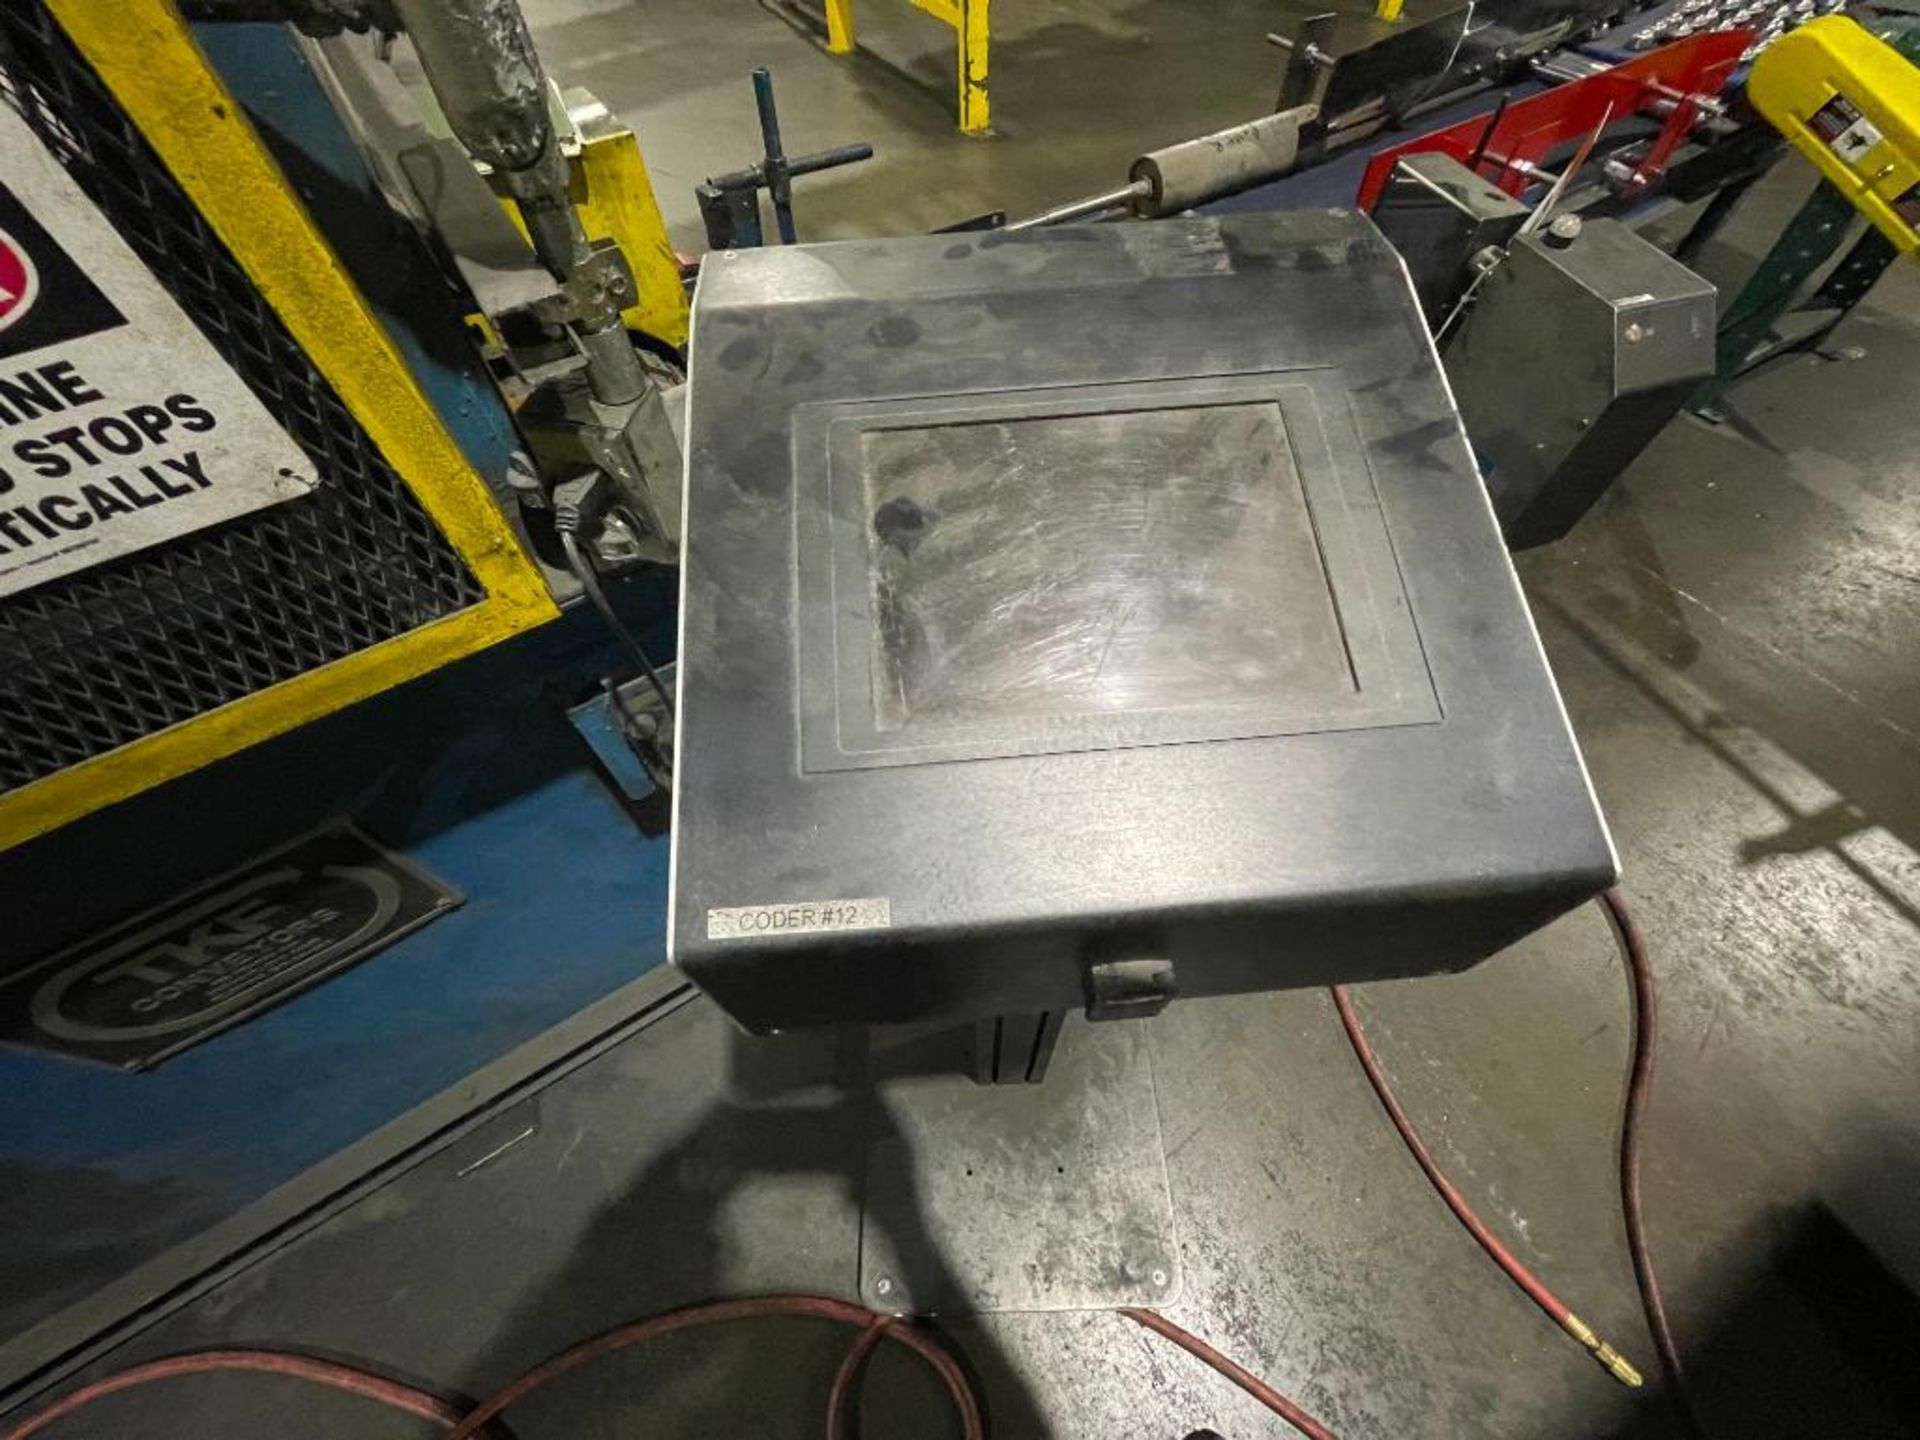 Automatic Printing Systems case coder - Image 5 of 18